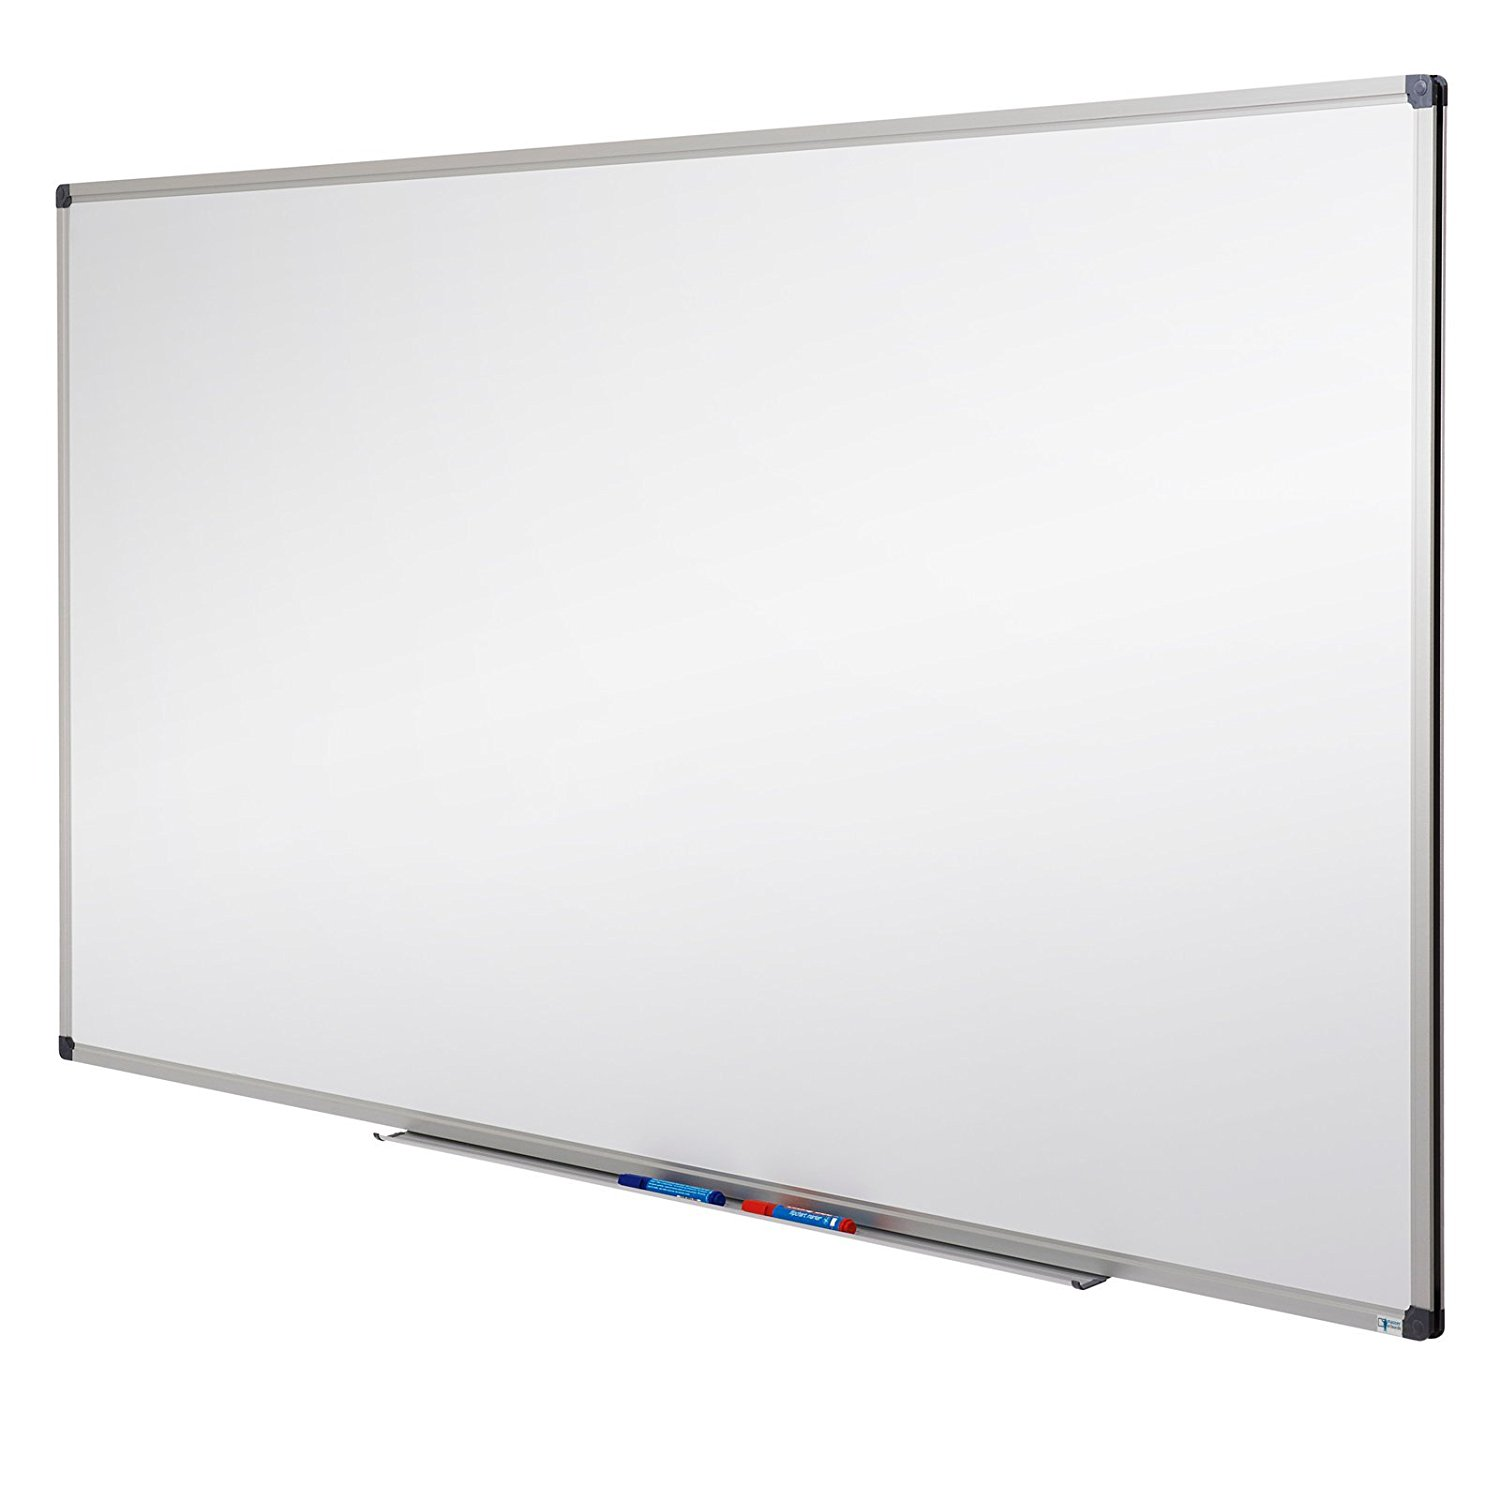 Whiteboard - amazon.com